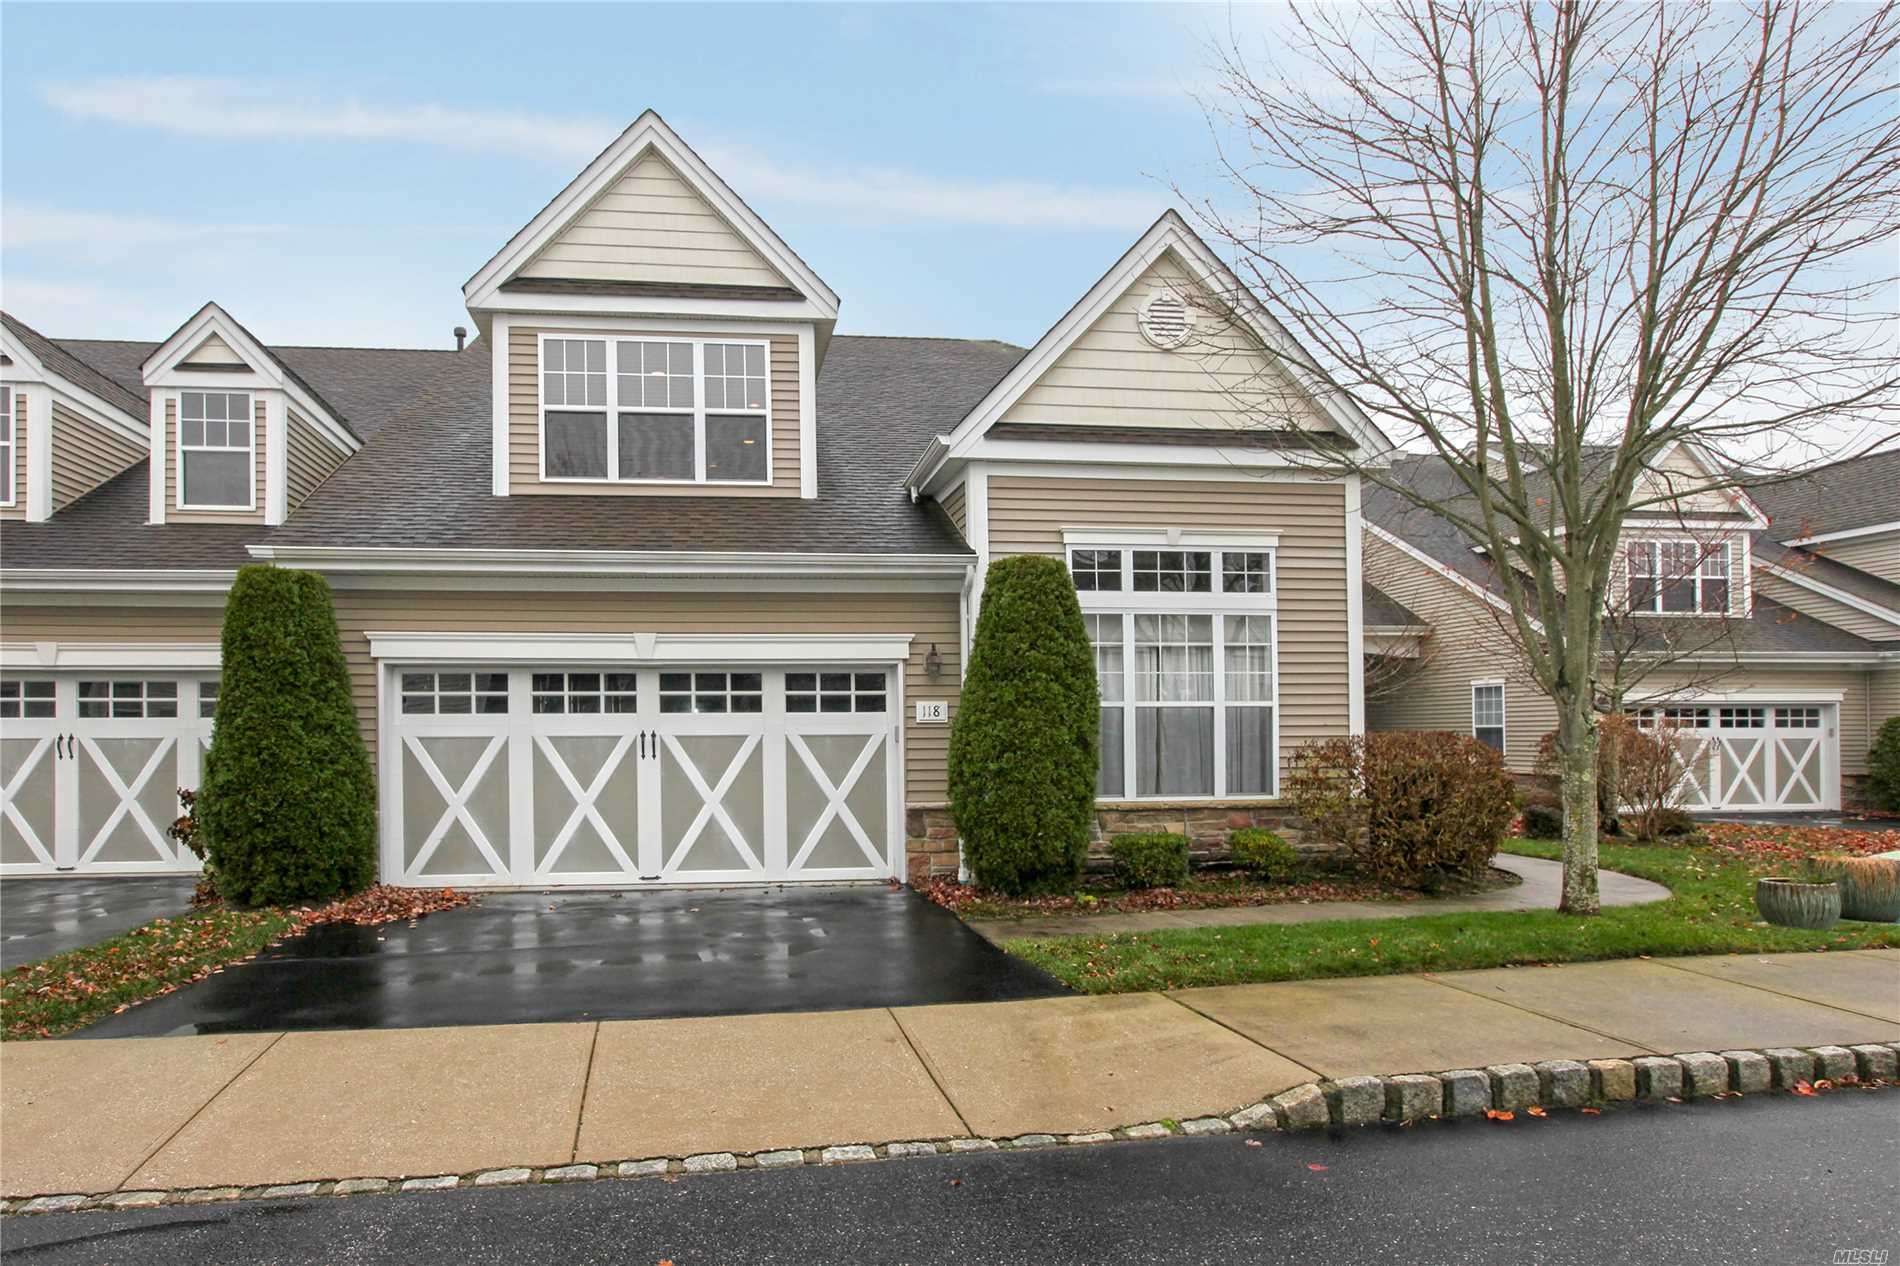 Hamptons Living W/O The Pricetag! Beautiful Cherry Eik W/ Double Wall Oven! Sunlit Breakfast Nook Overlooks One Of The Most Private Yards In The Development With Beautiful Custom Gardens And A Paver Patio! Relax And Unwind In Your King+ Mbr Suite With A Huge Wic And Beautiful Mster Bth! Entertain In Your Open Plan Living Room With Soaring 18' Ceilings! You Can Host Your Entire Family In The Large Fdr! Upstairs Is A Tremendous Loft Space With A Huge Wic And Storage Rm. 15 Min To West Hampton!